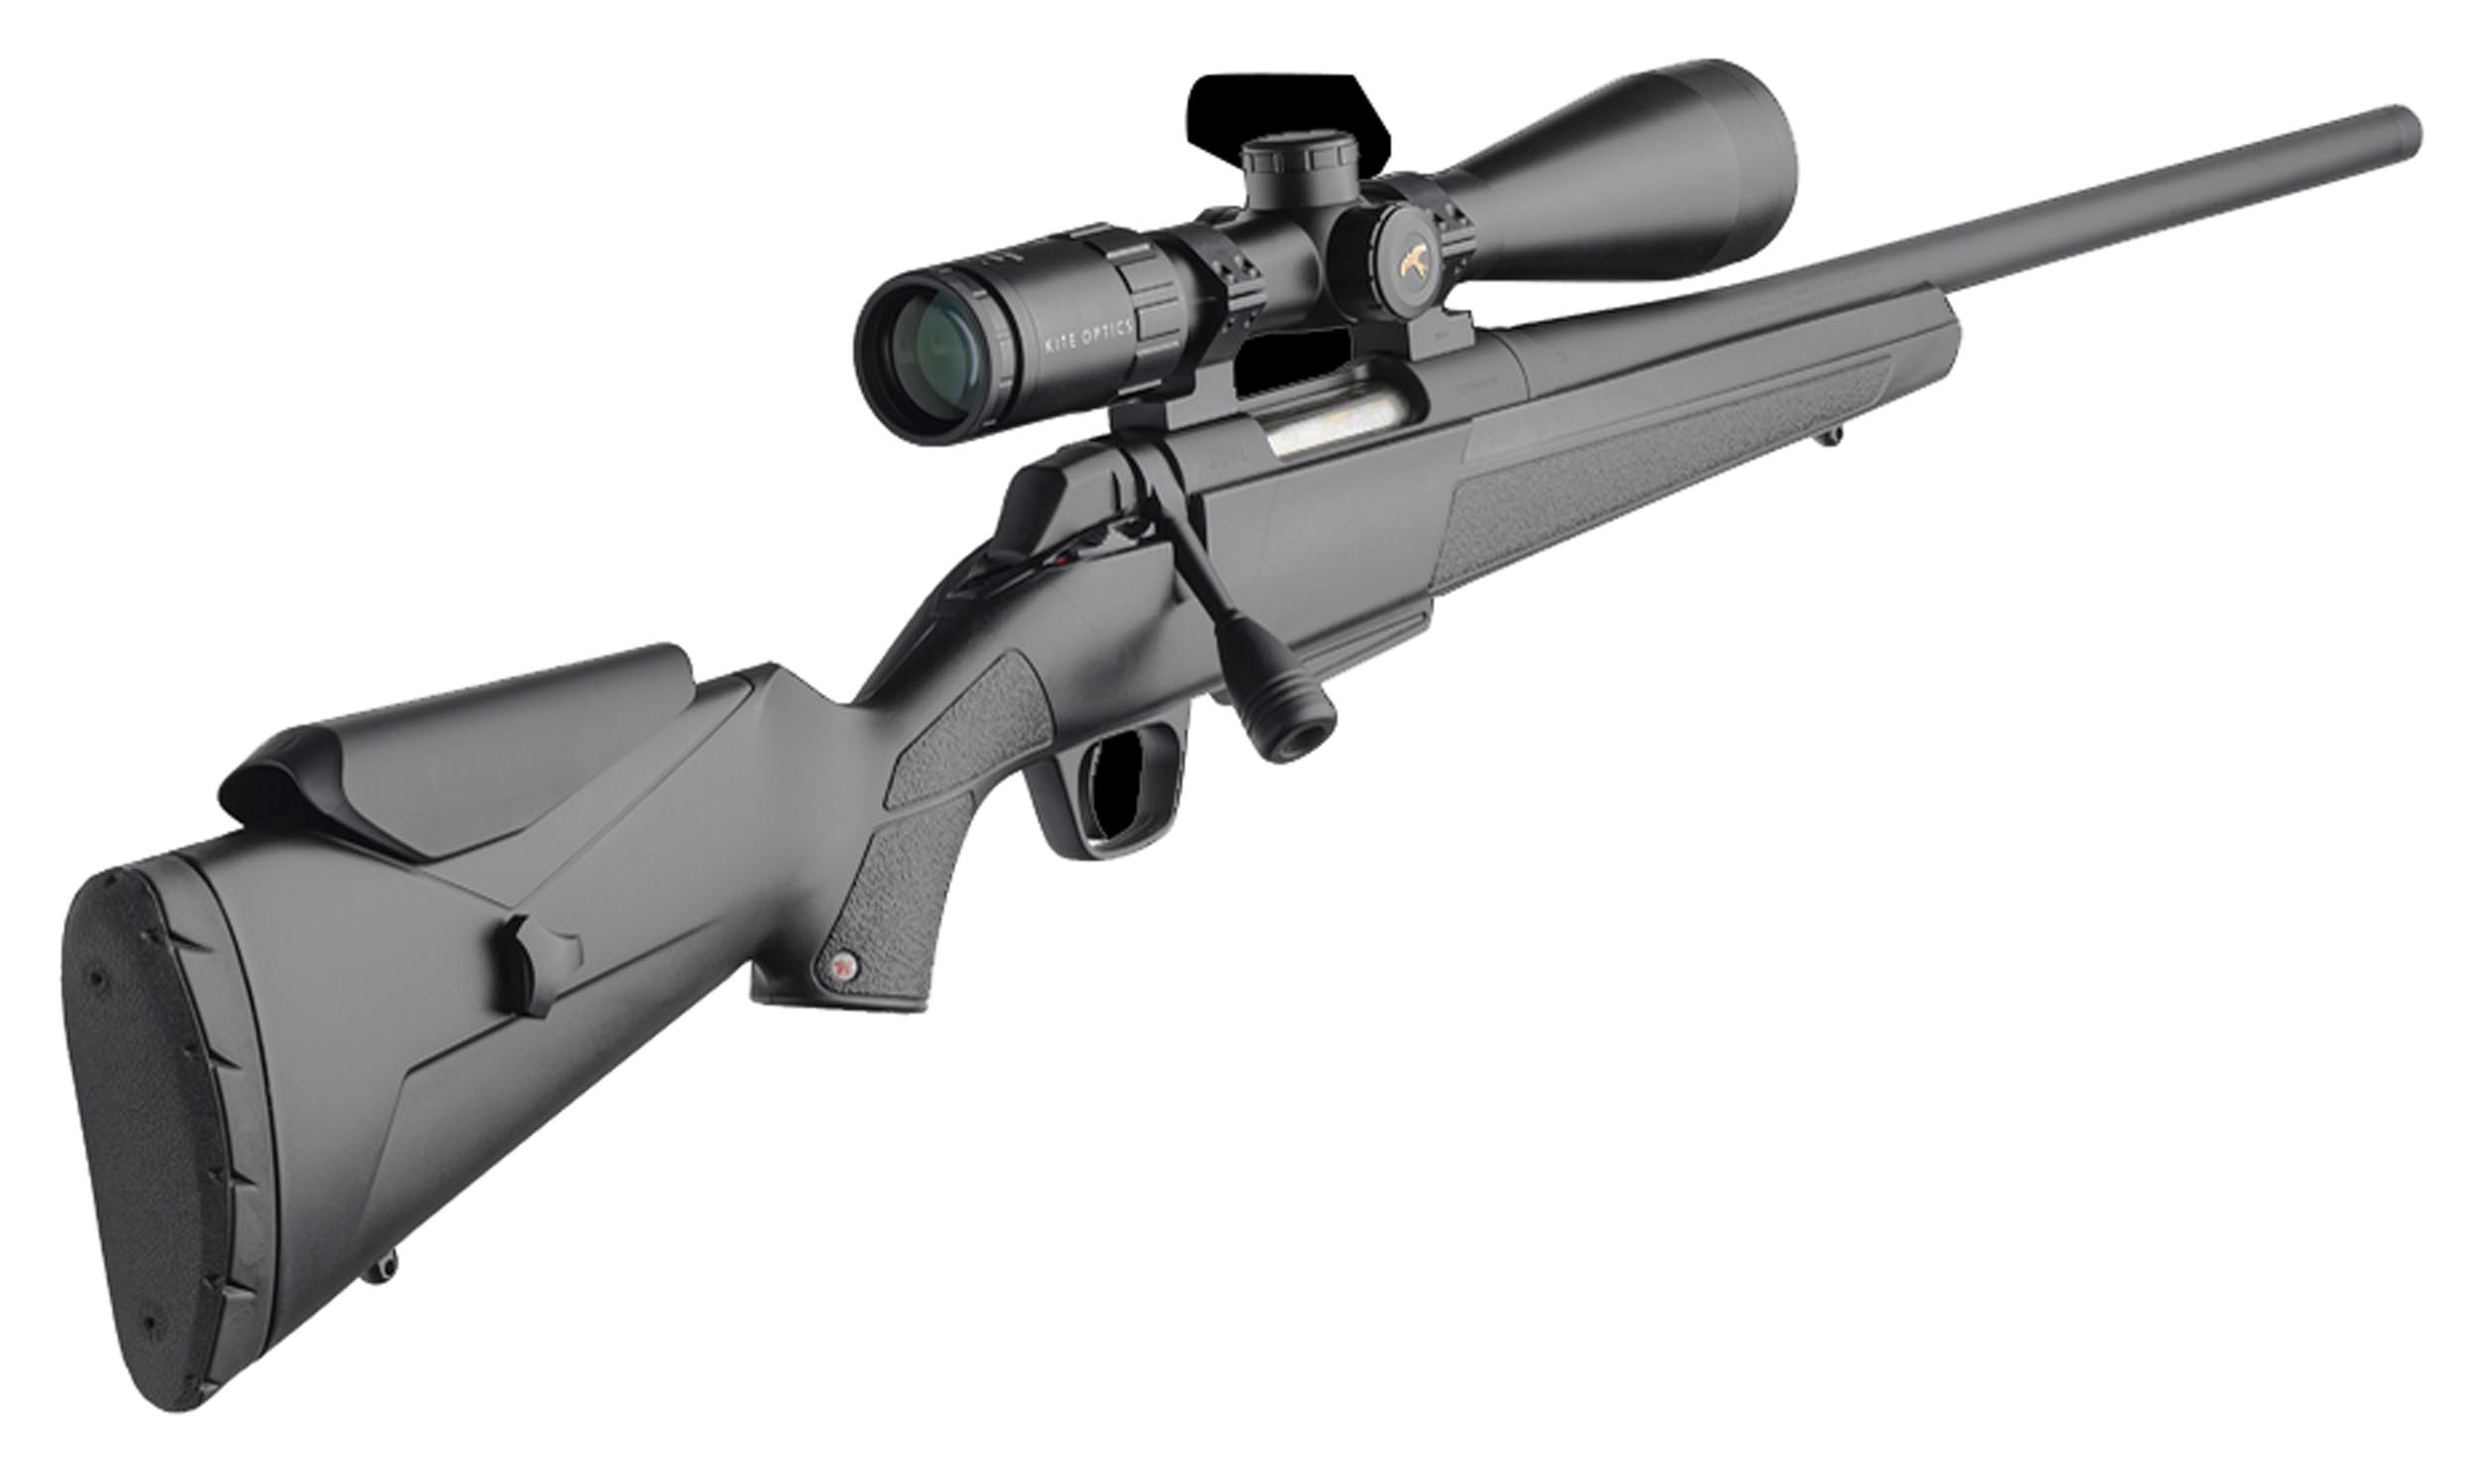 BRO9181-03 Carabine XPR Varmint crosse synthétique réglable - Threaded - BRO9181